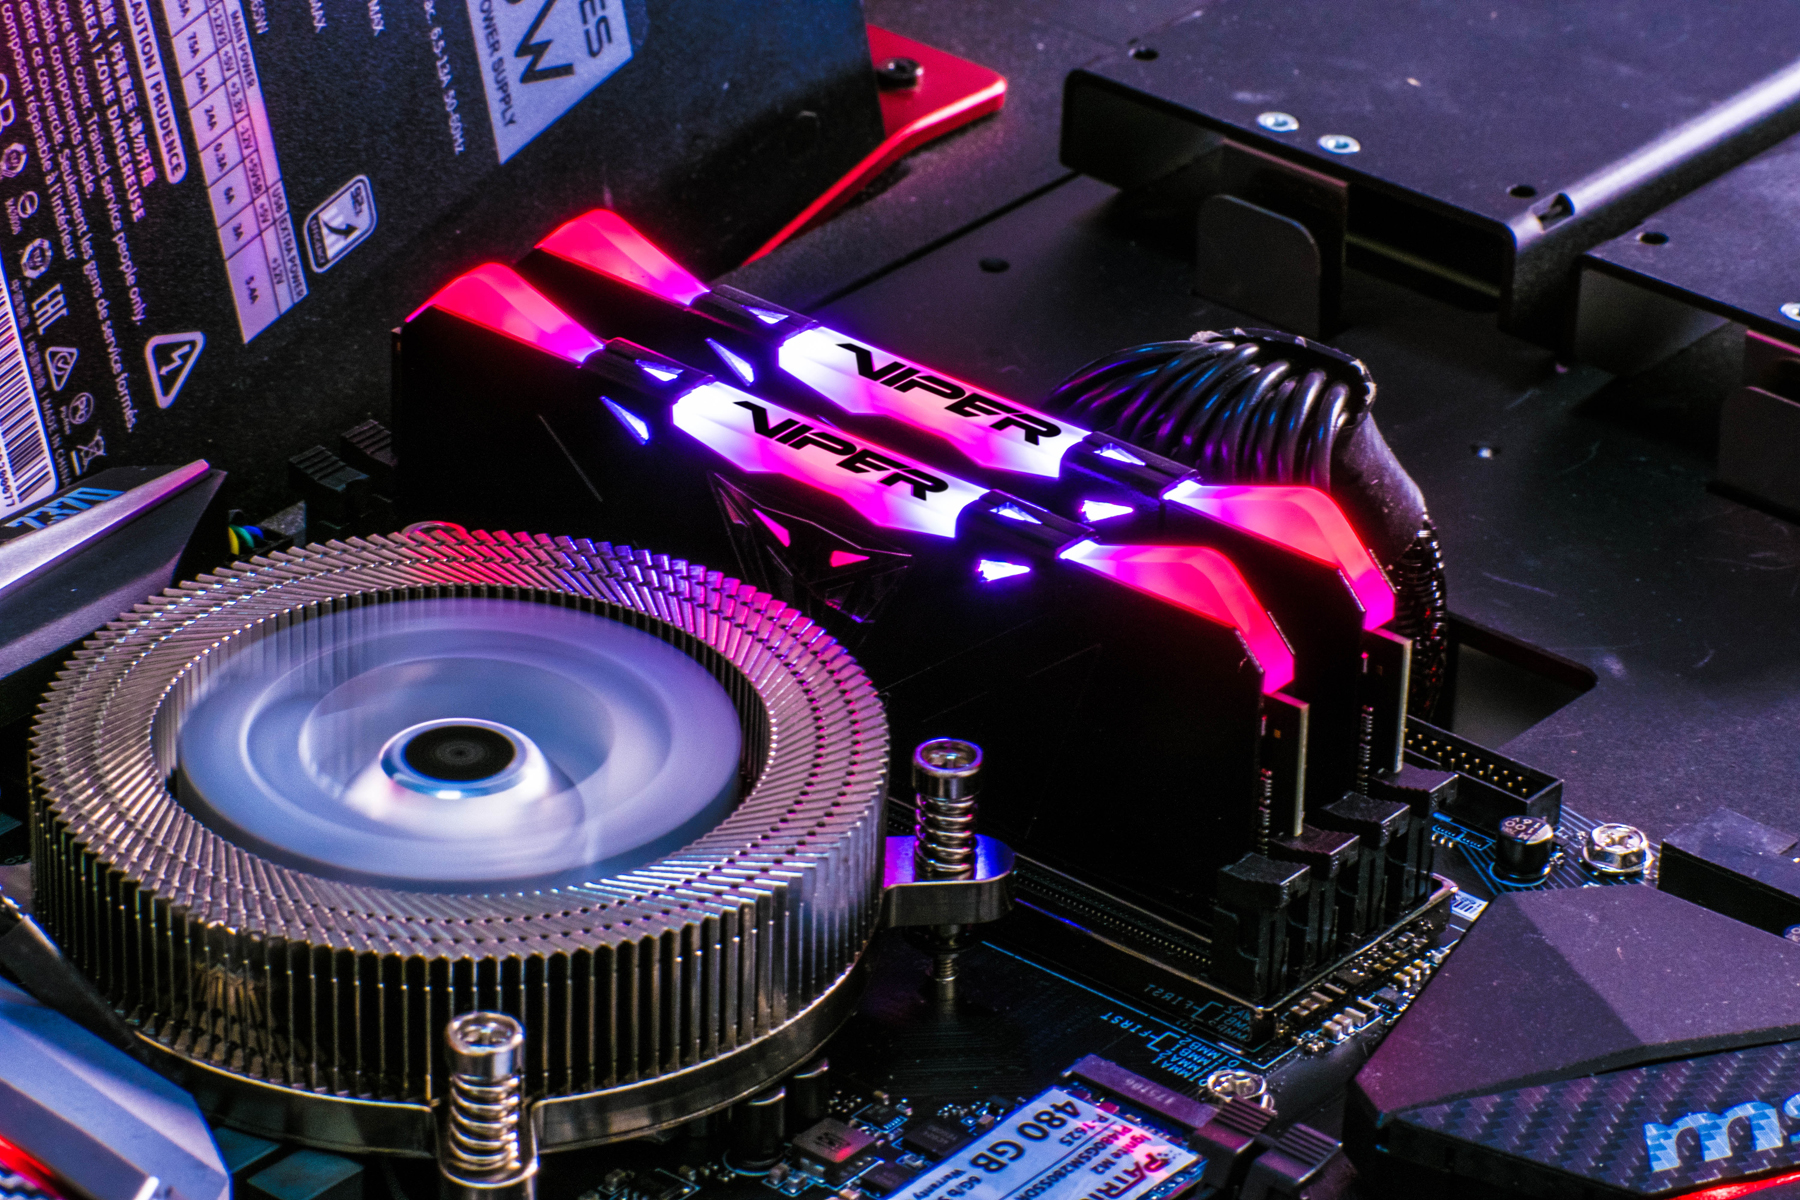 Viper RGB DDR4 Performance Memory